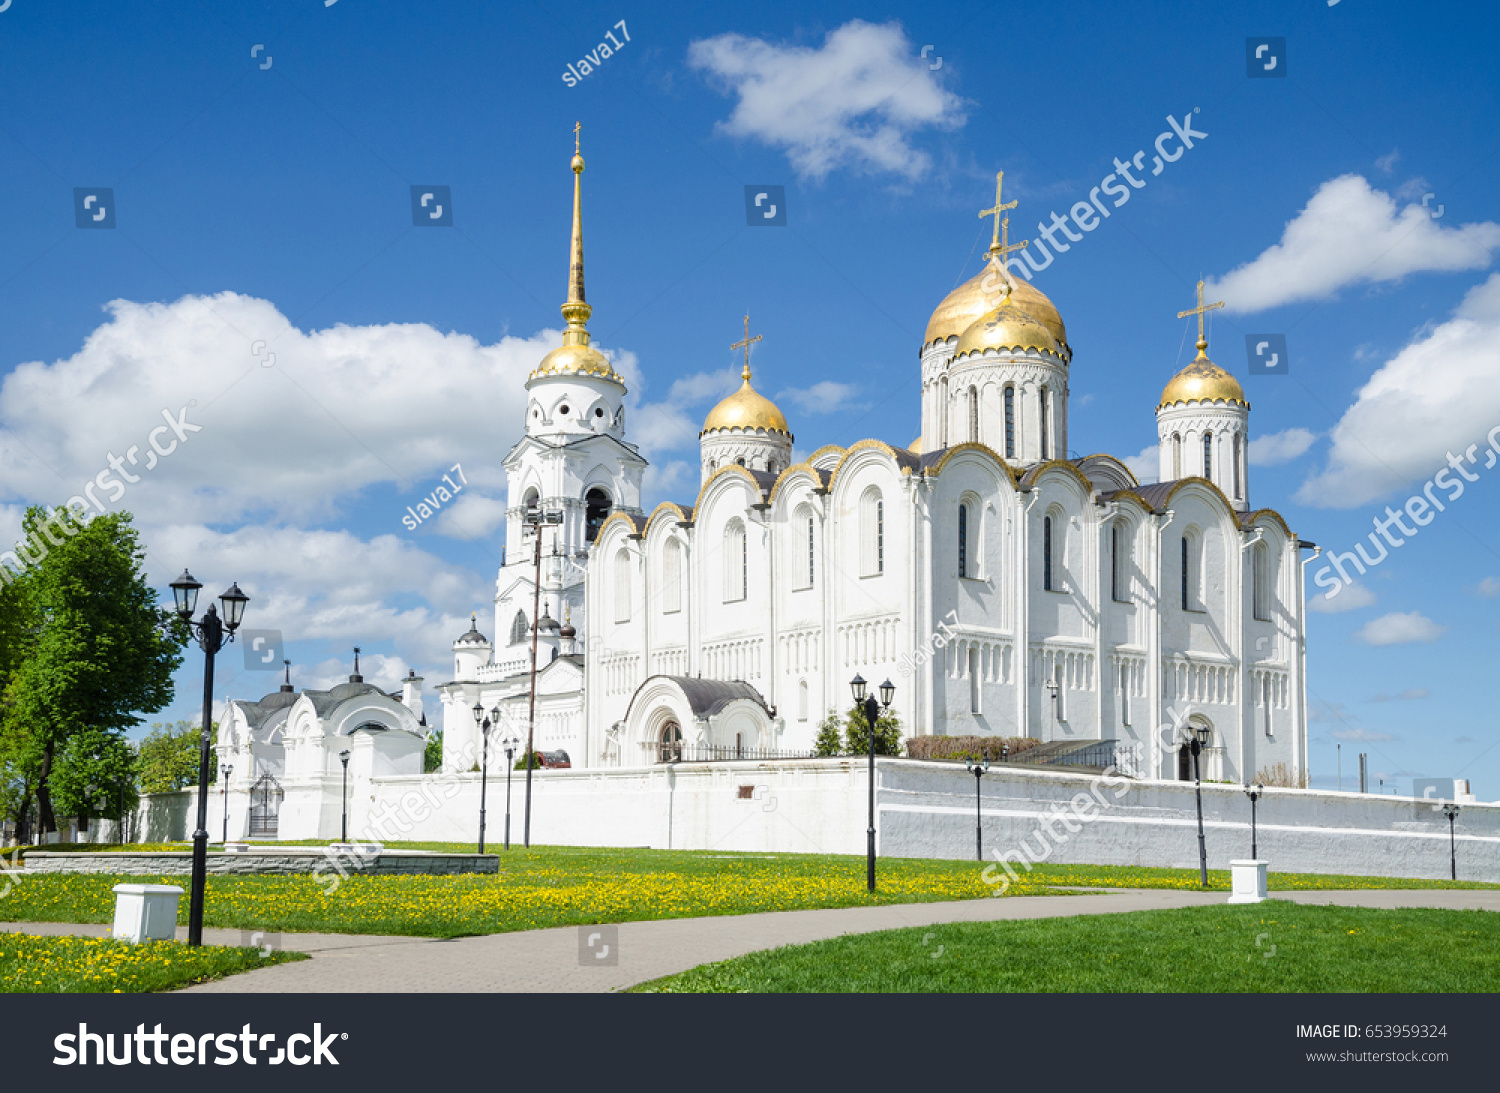 Sights of the city of Vladimir: description and photos 26